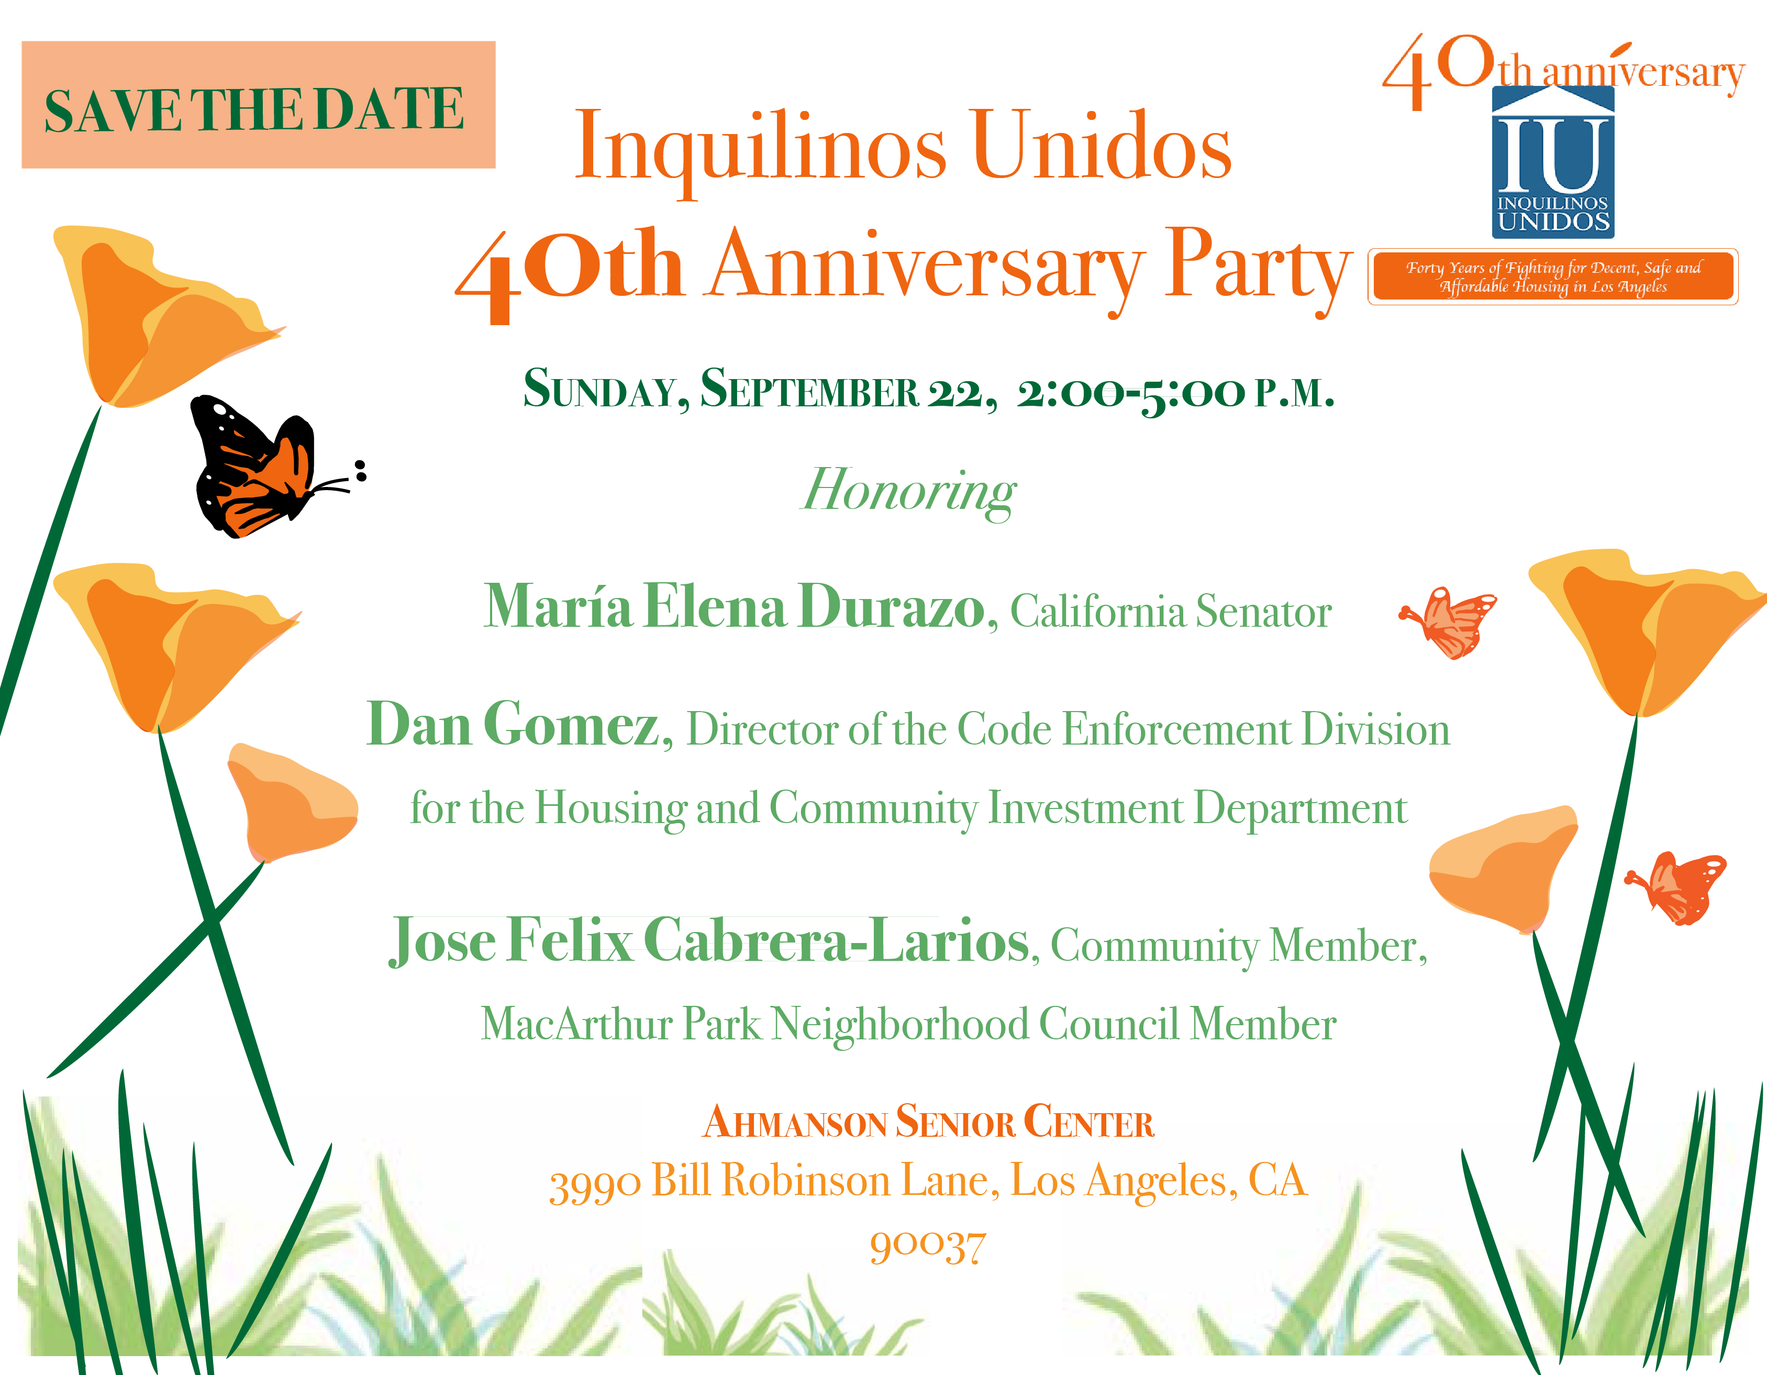 Inquilinos Unidos 40th Anniversary Garden Party image